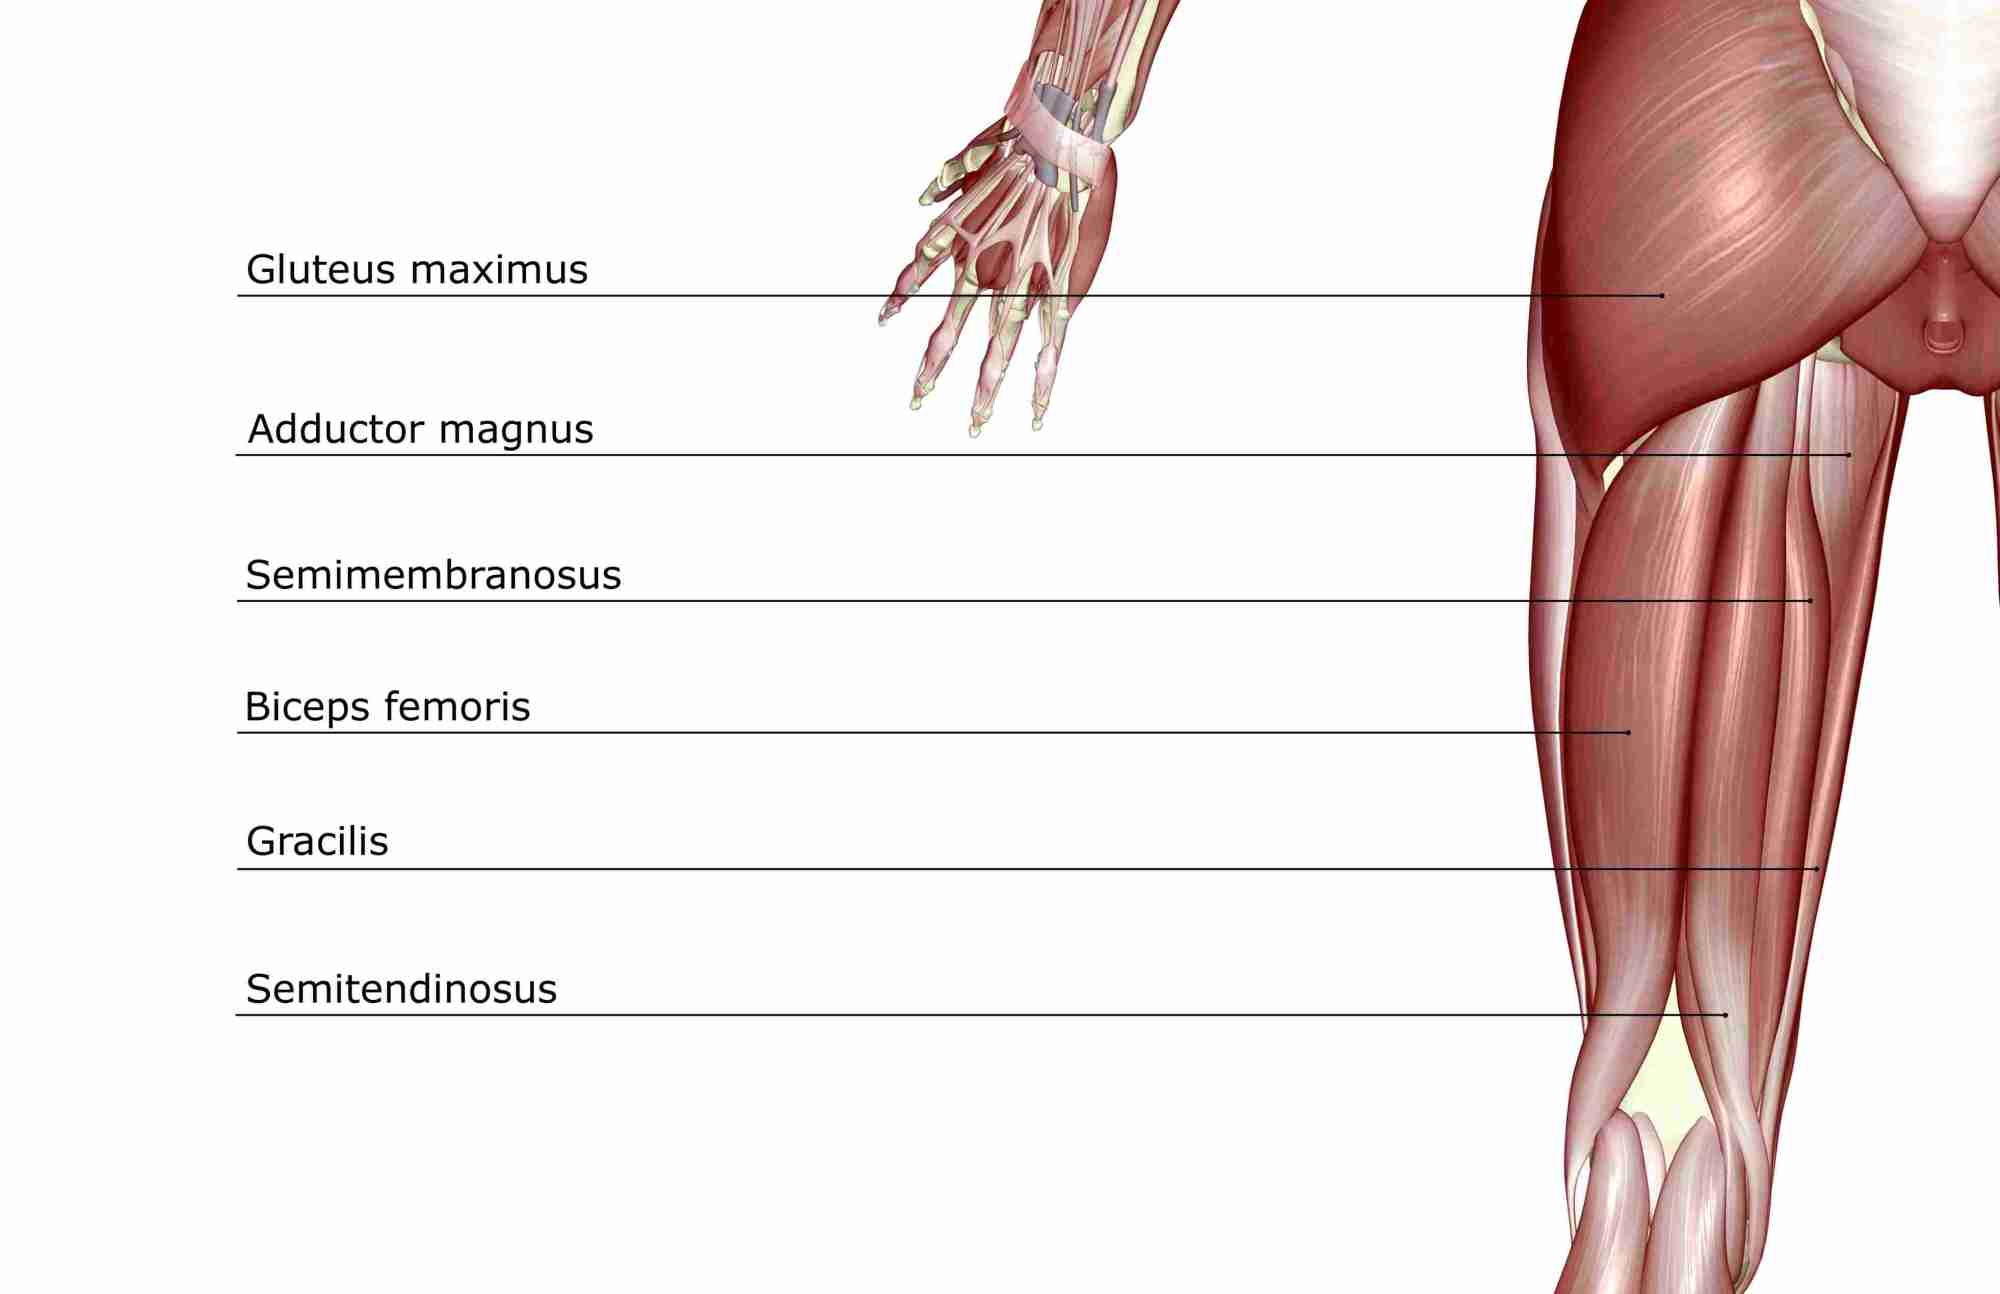 hight resolution of muscle diagram of lower extremity shows hamstrings